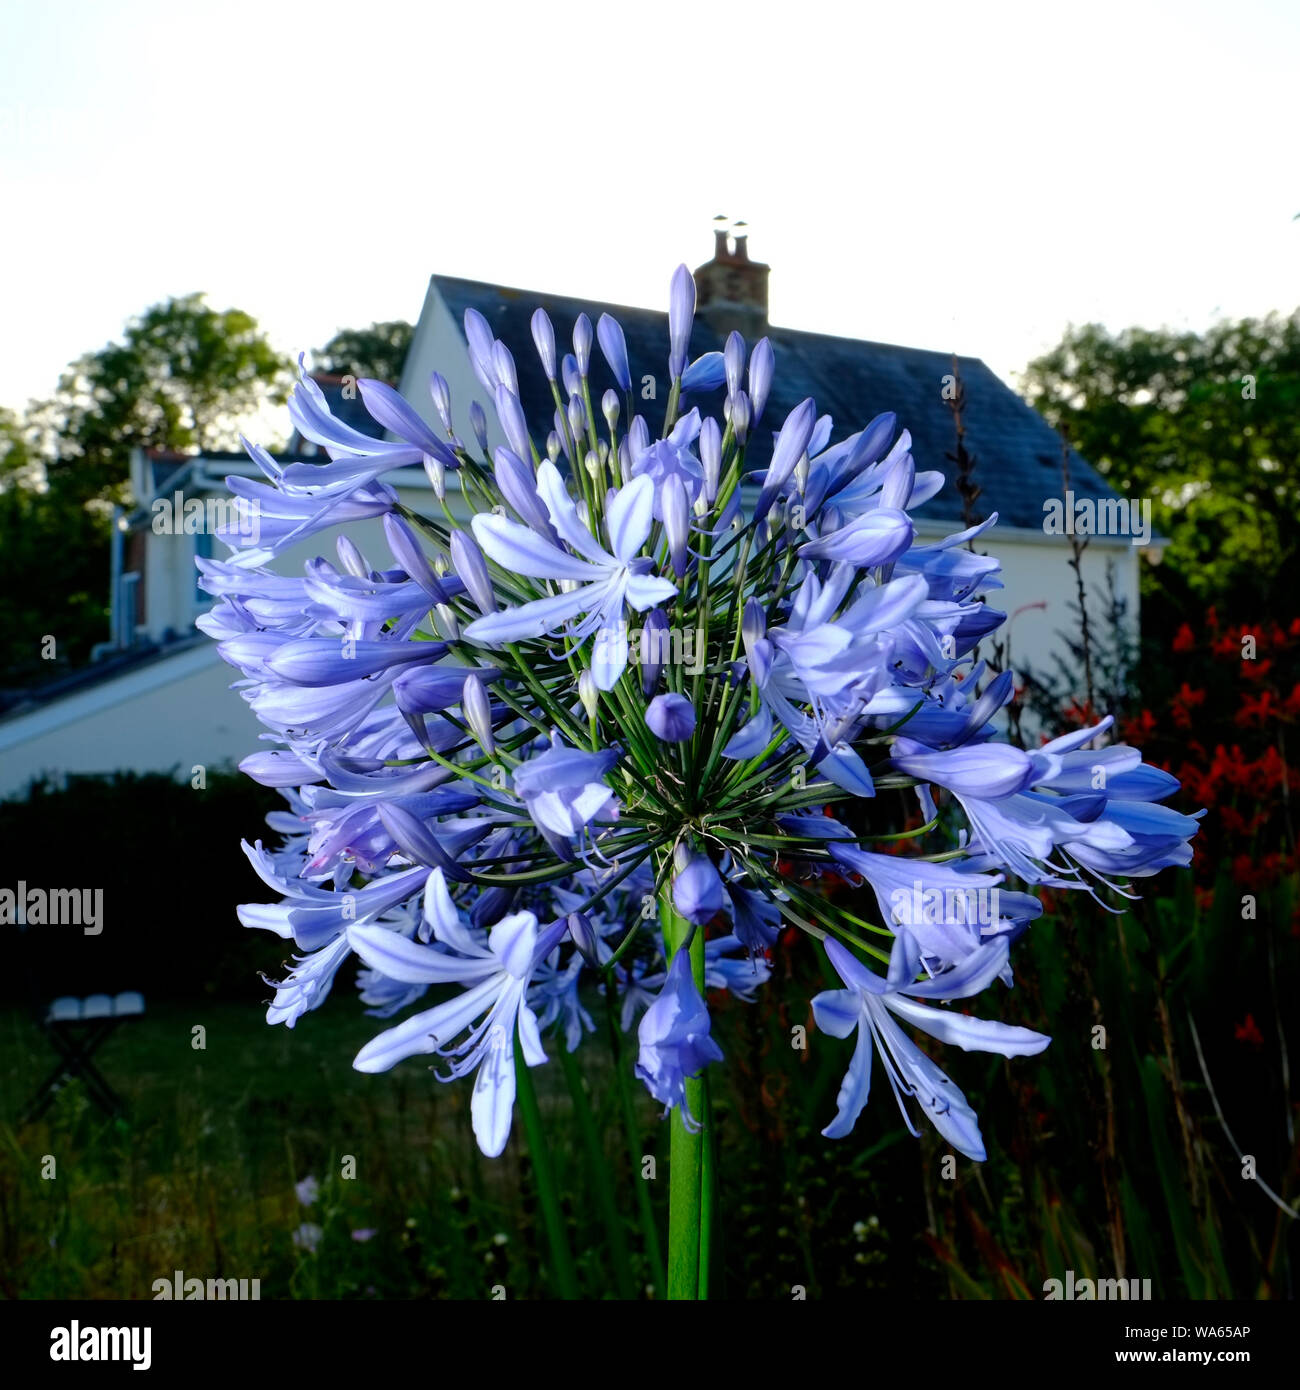 A potted Agapanthus during the height of an English summer in full bloom Stock Photo